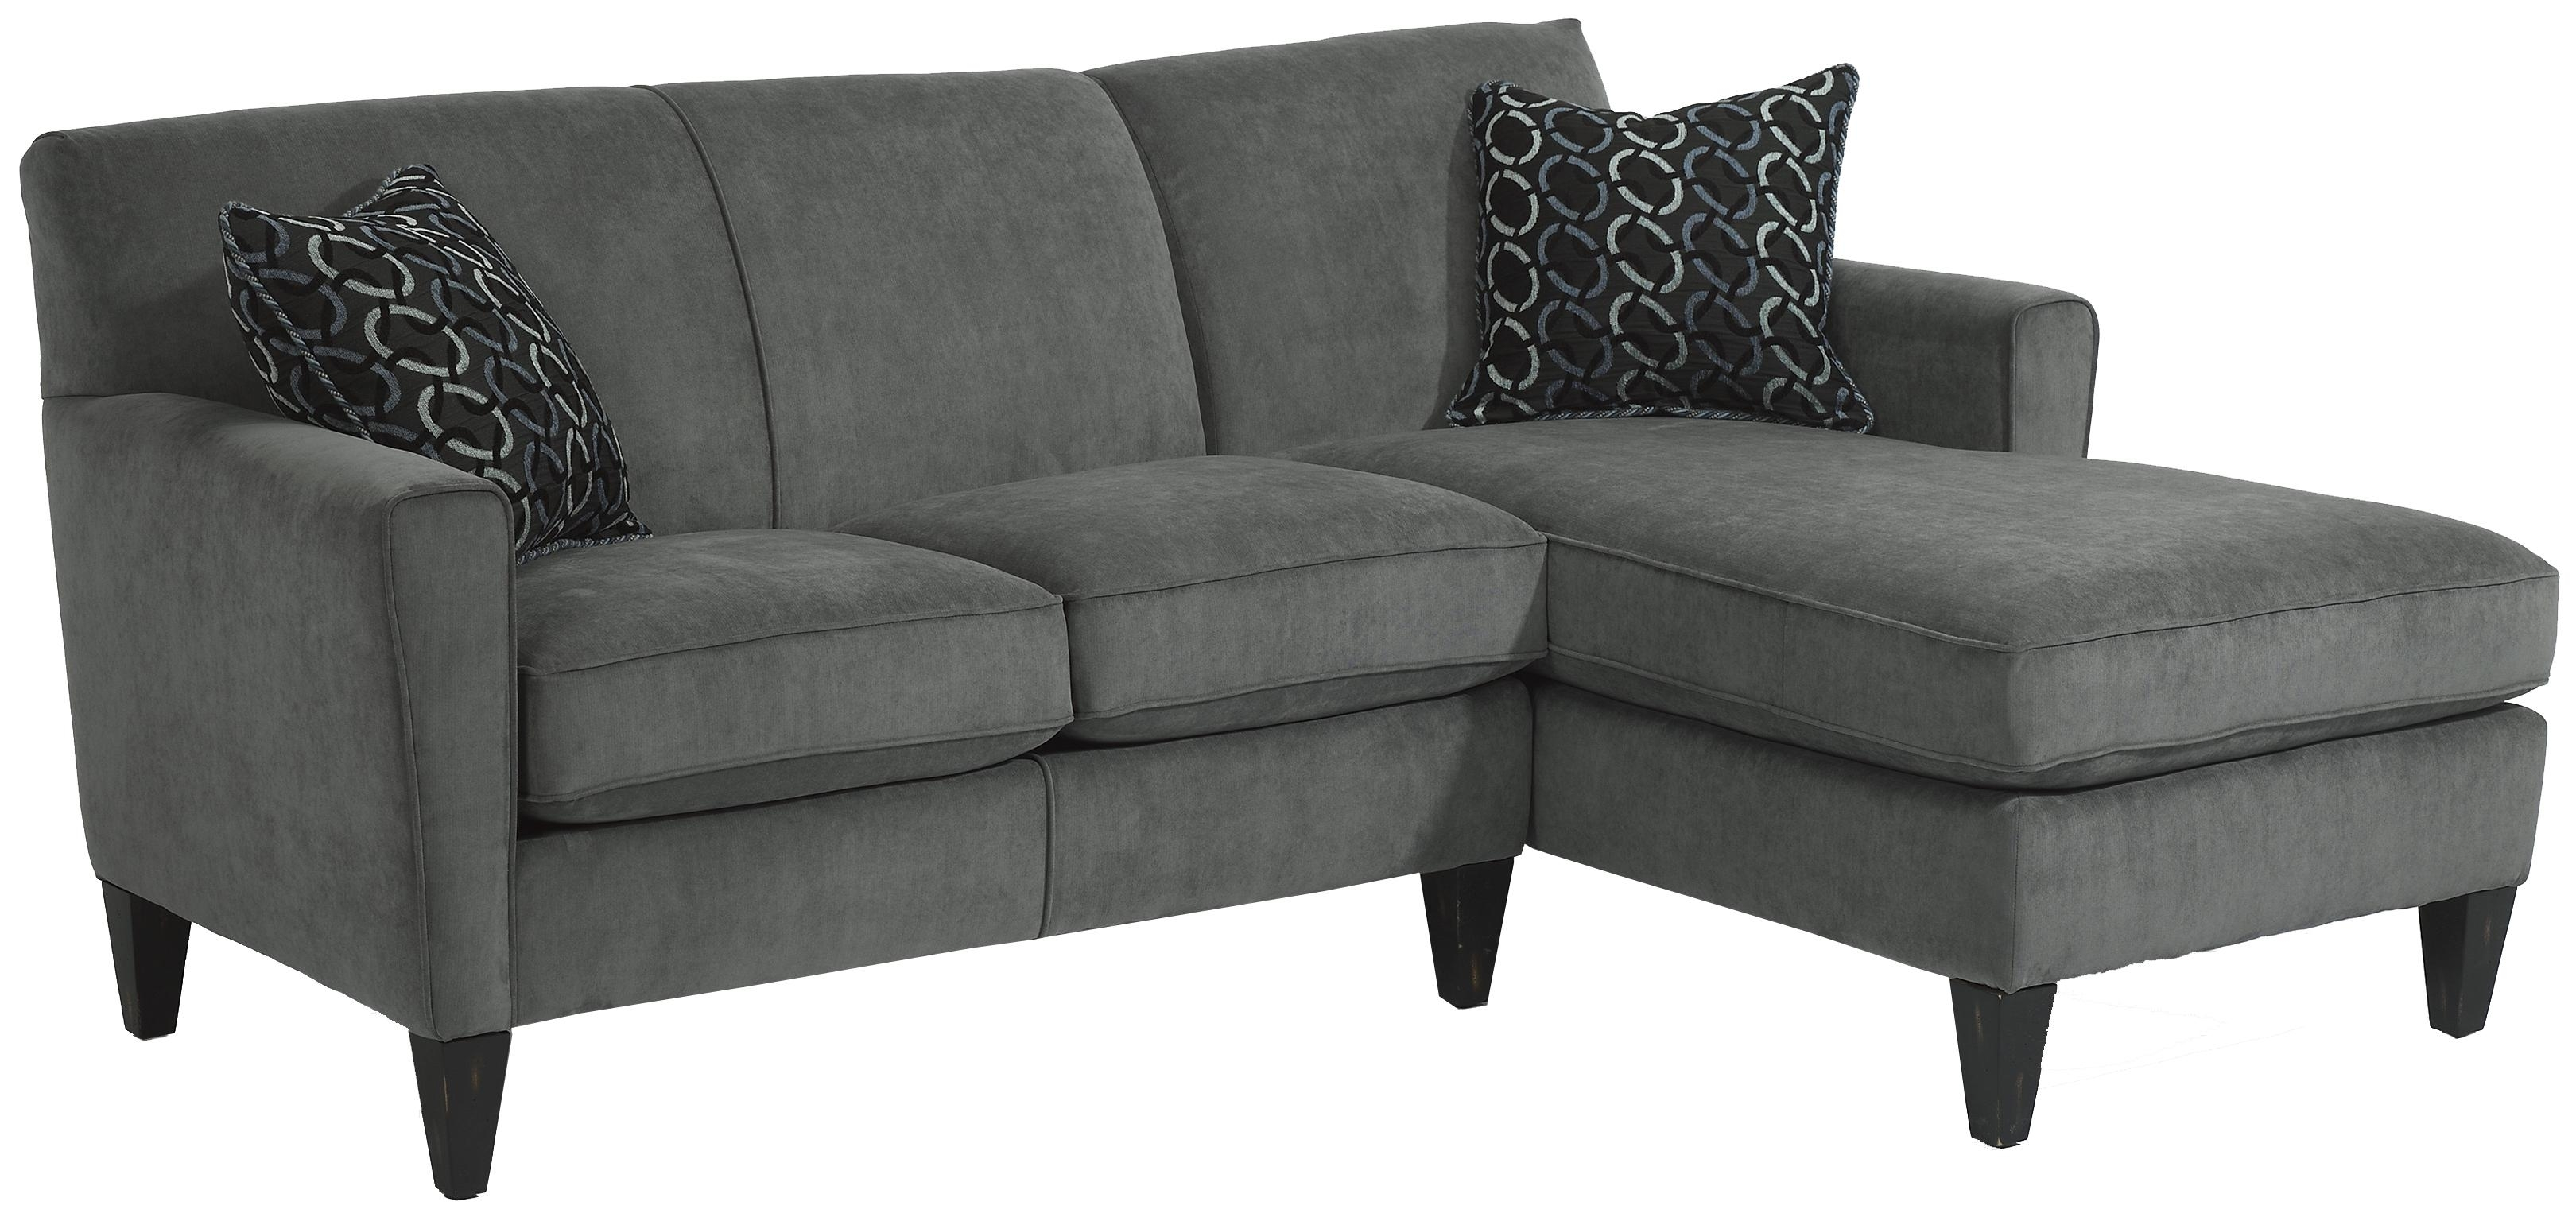 Flexsteel Digby Contemporary Sectional Sofa With Raf Chaise – Ahfa Inside Norfolk Chocolate 6 Piece Sectionals With Laf Chaise (Image 13 of 25)